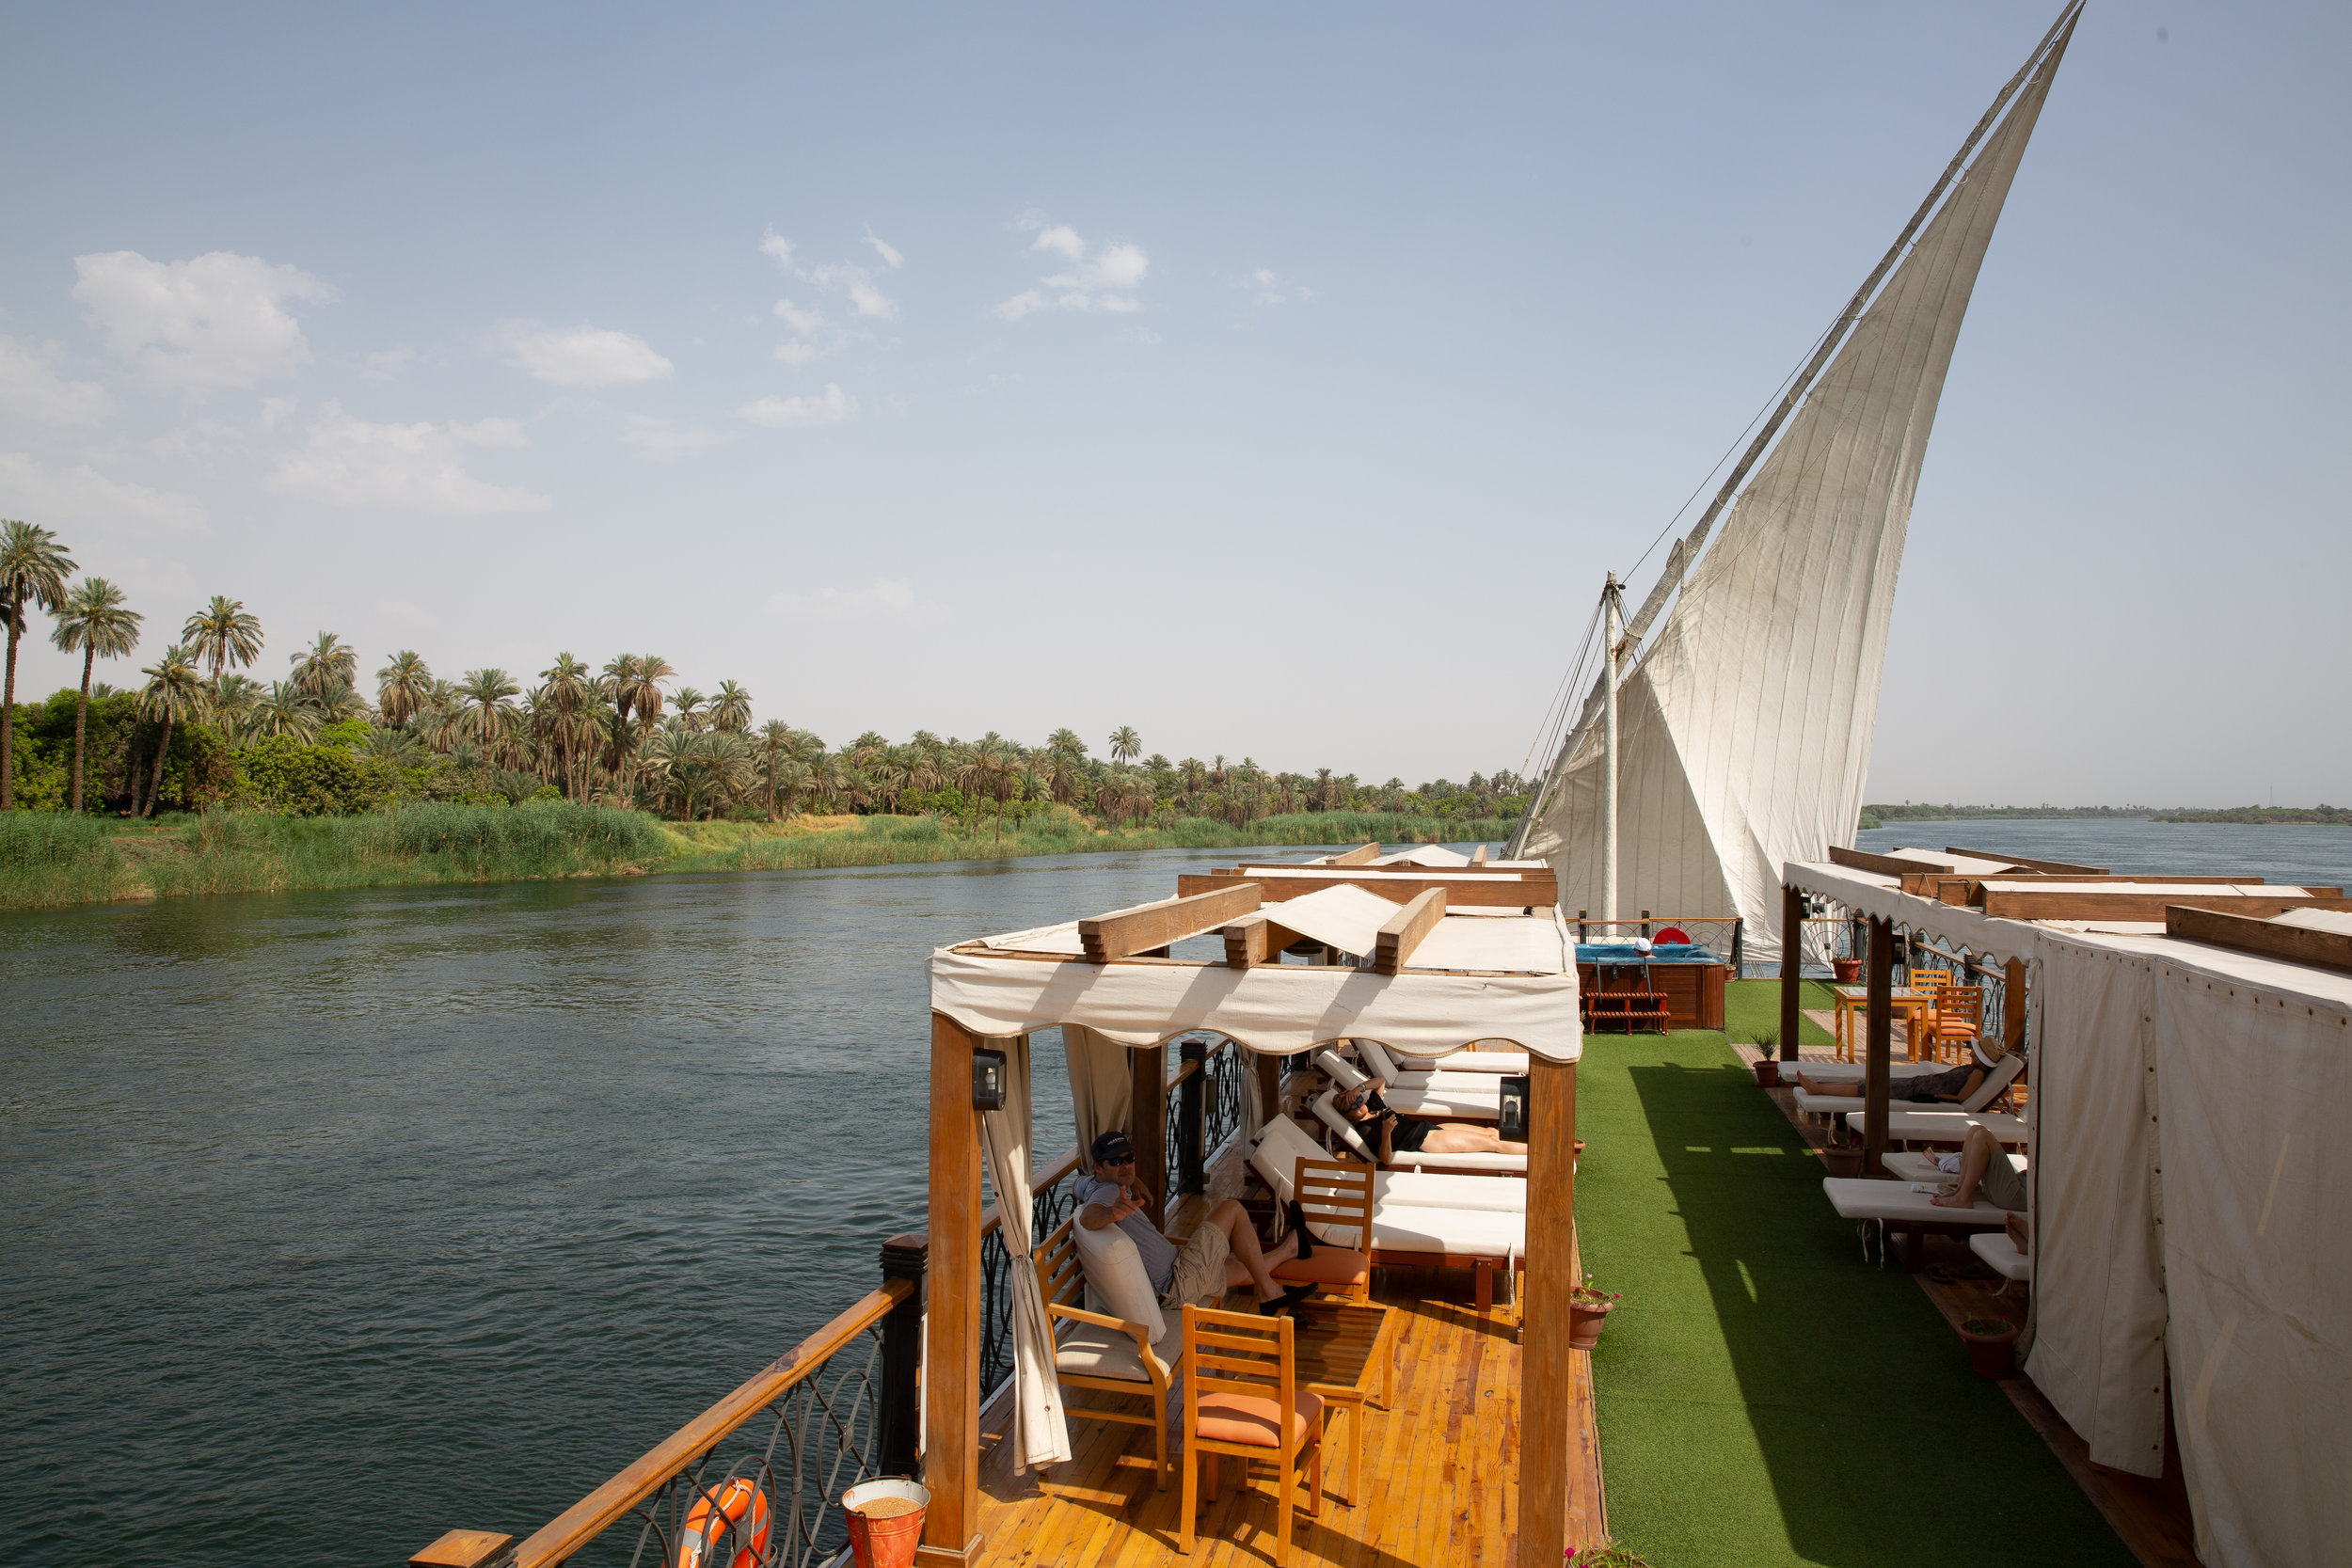 Sailing on our Dahabiya, Nile - Egypt - Wild Earth Expeditions